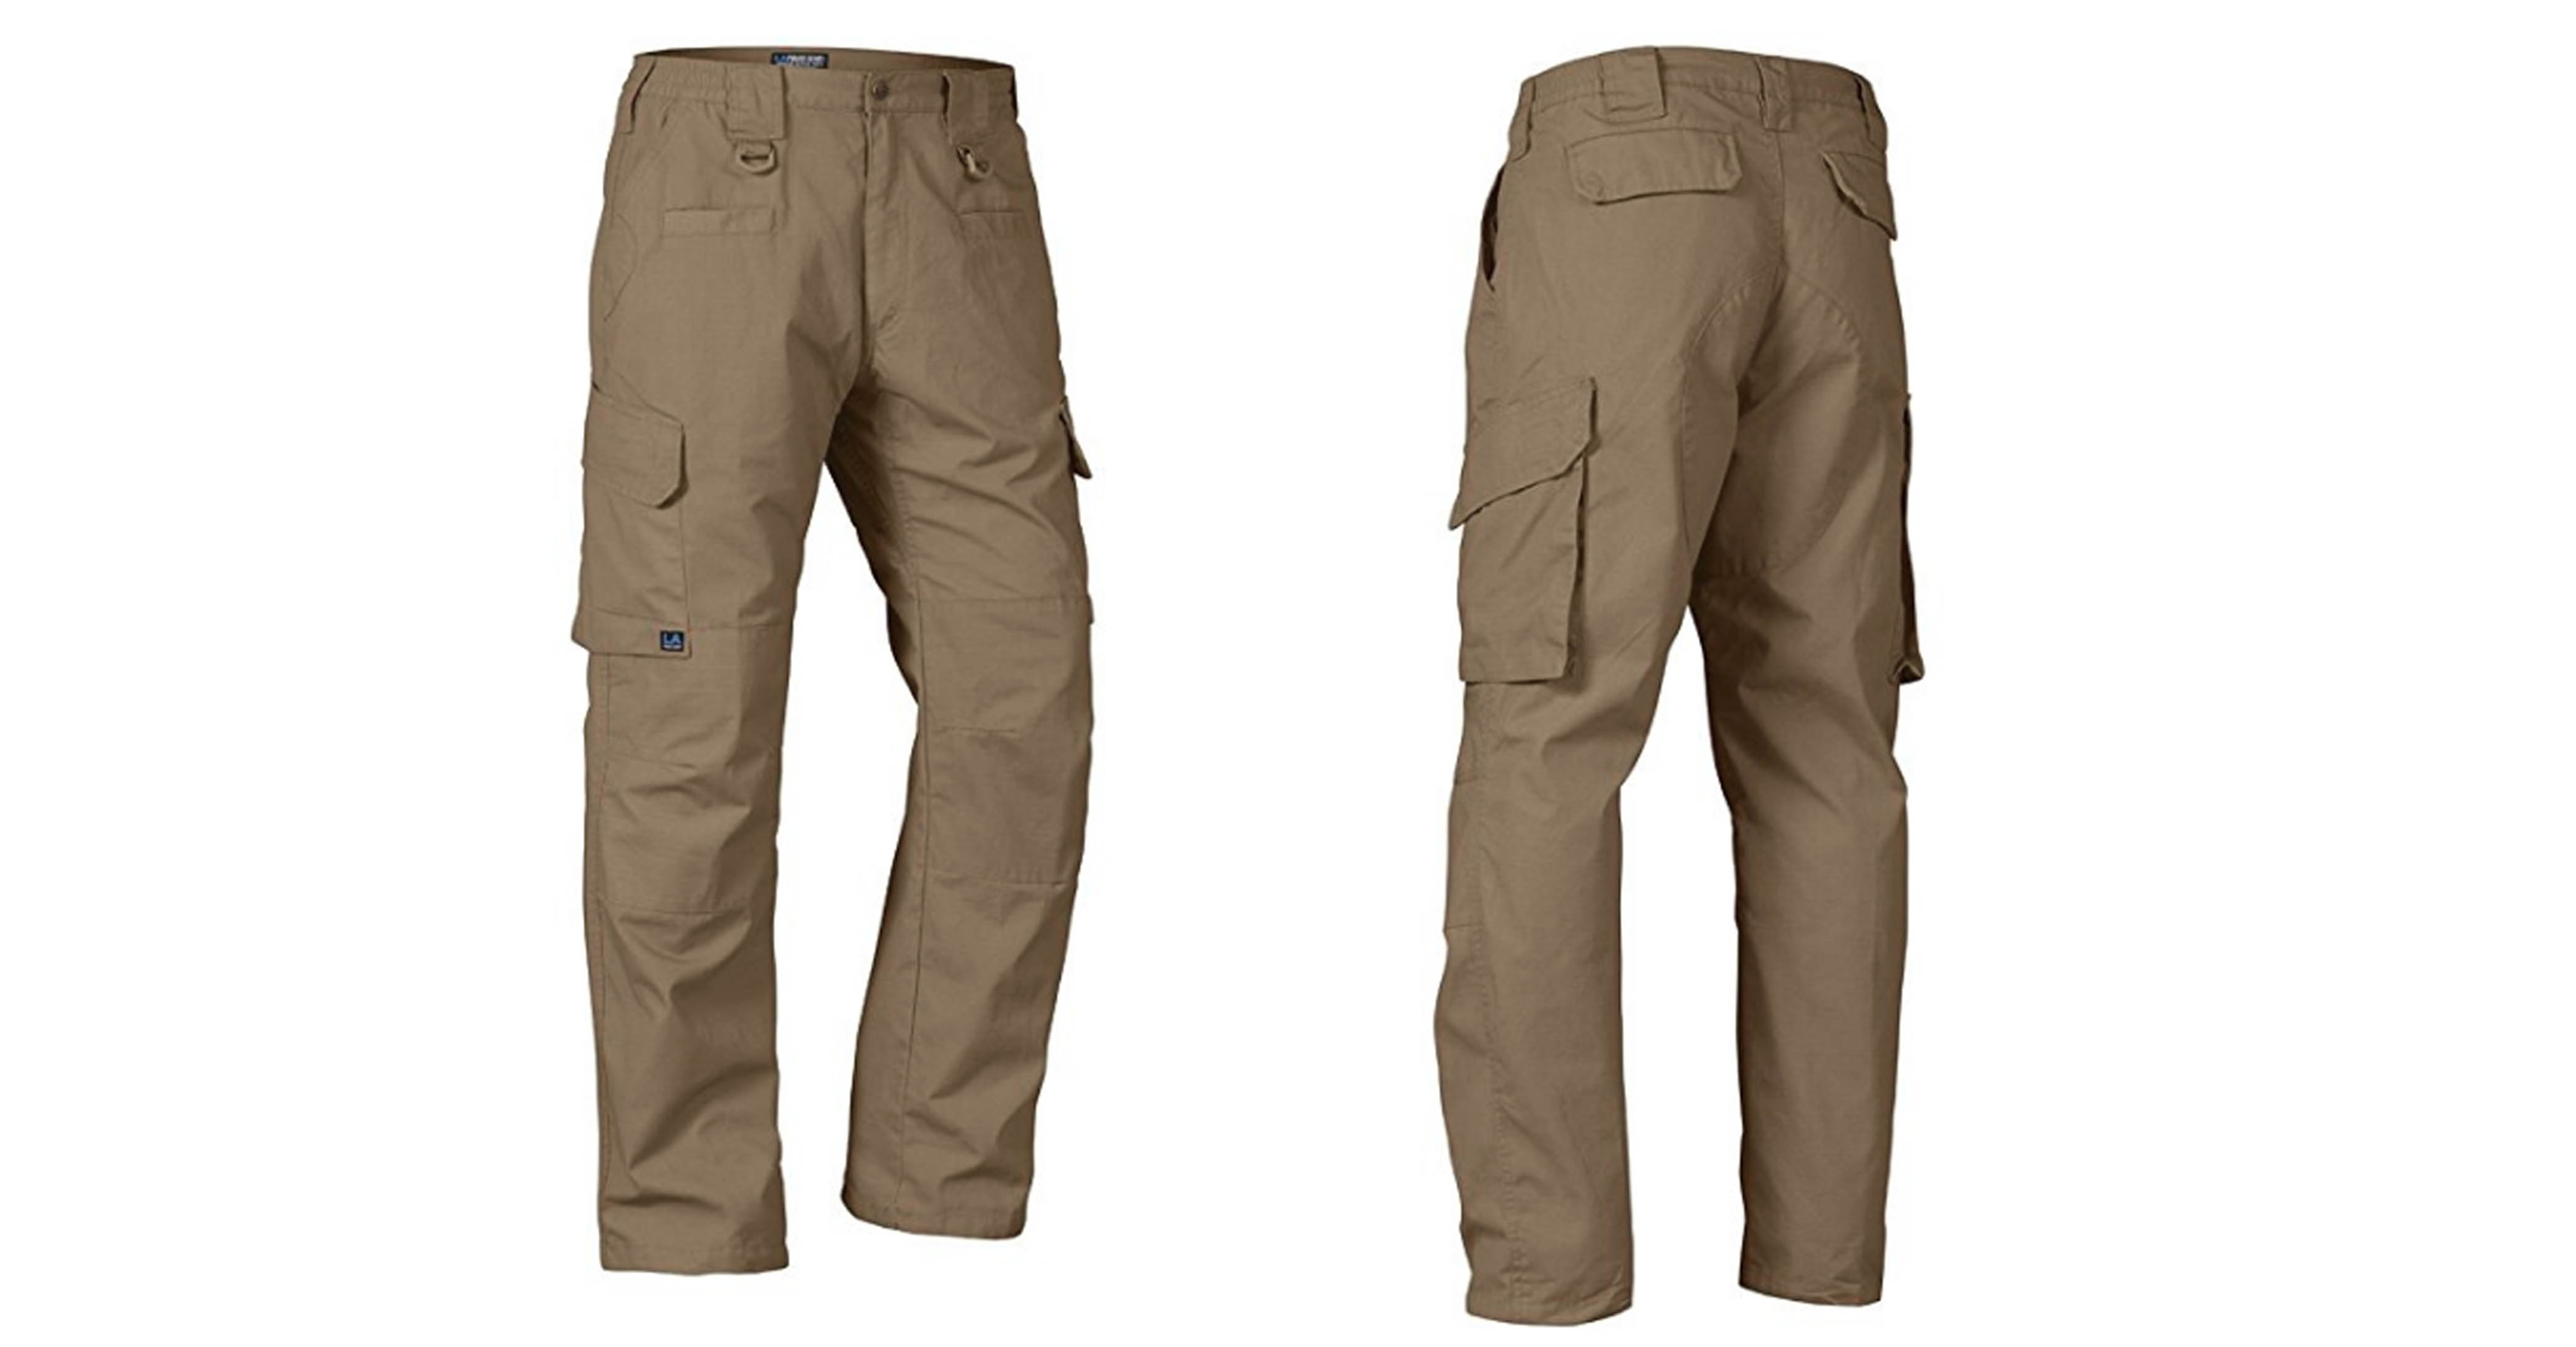 LA Police Gear Operator Tactical Pants with Elastic Waistband